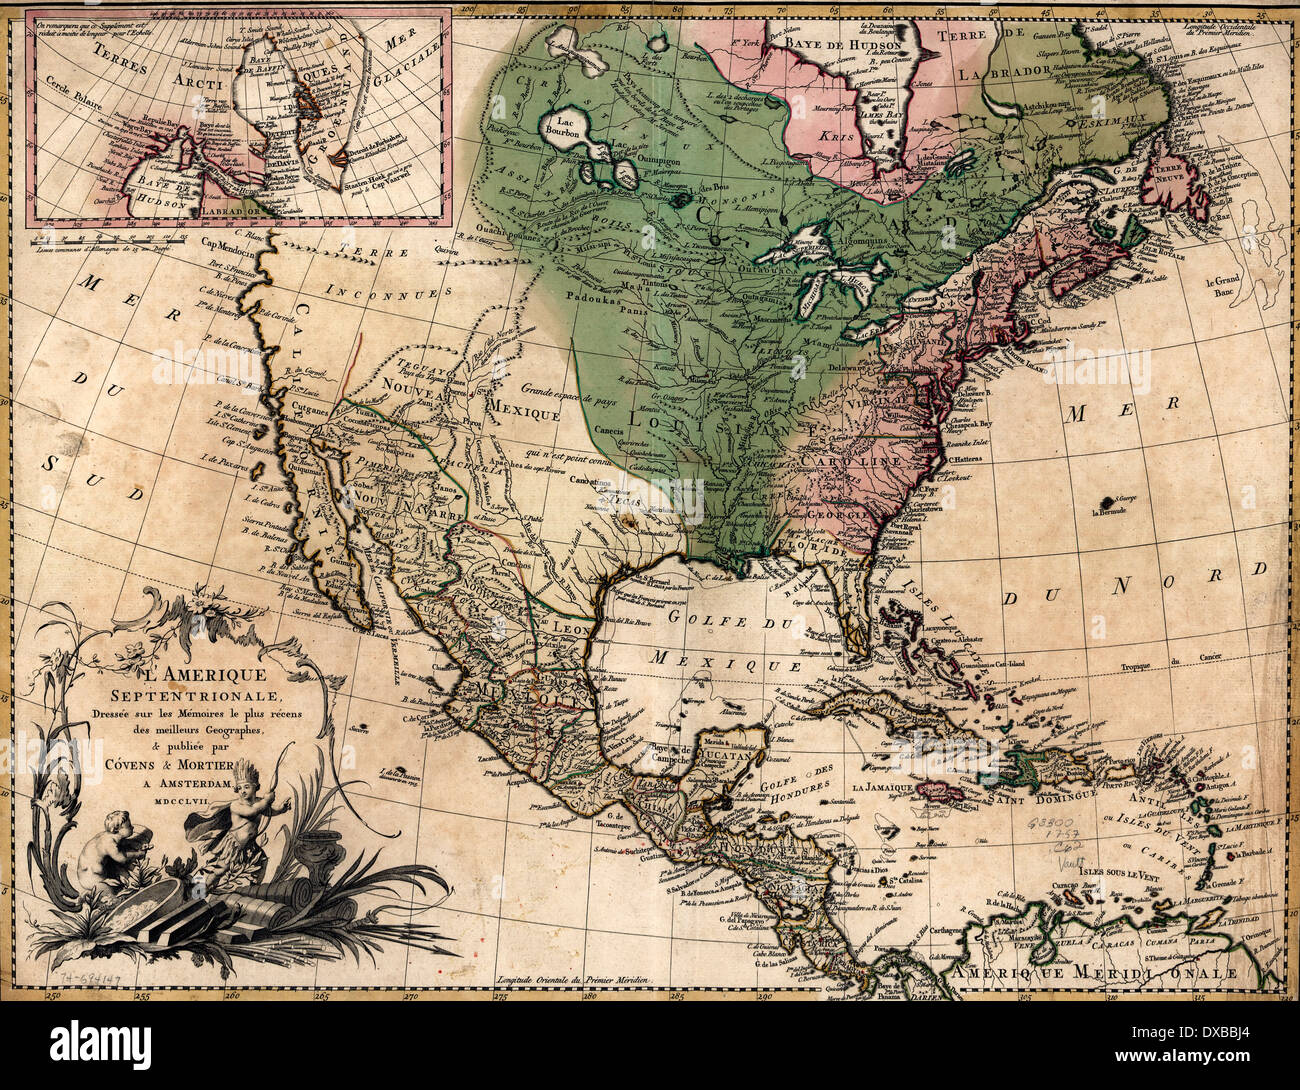 L'Amérique septentrionale, 1757 North American Map 1757 - Stock Image